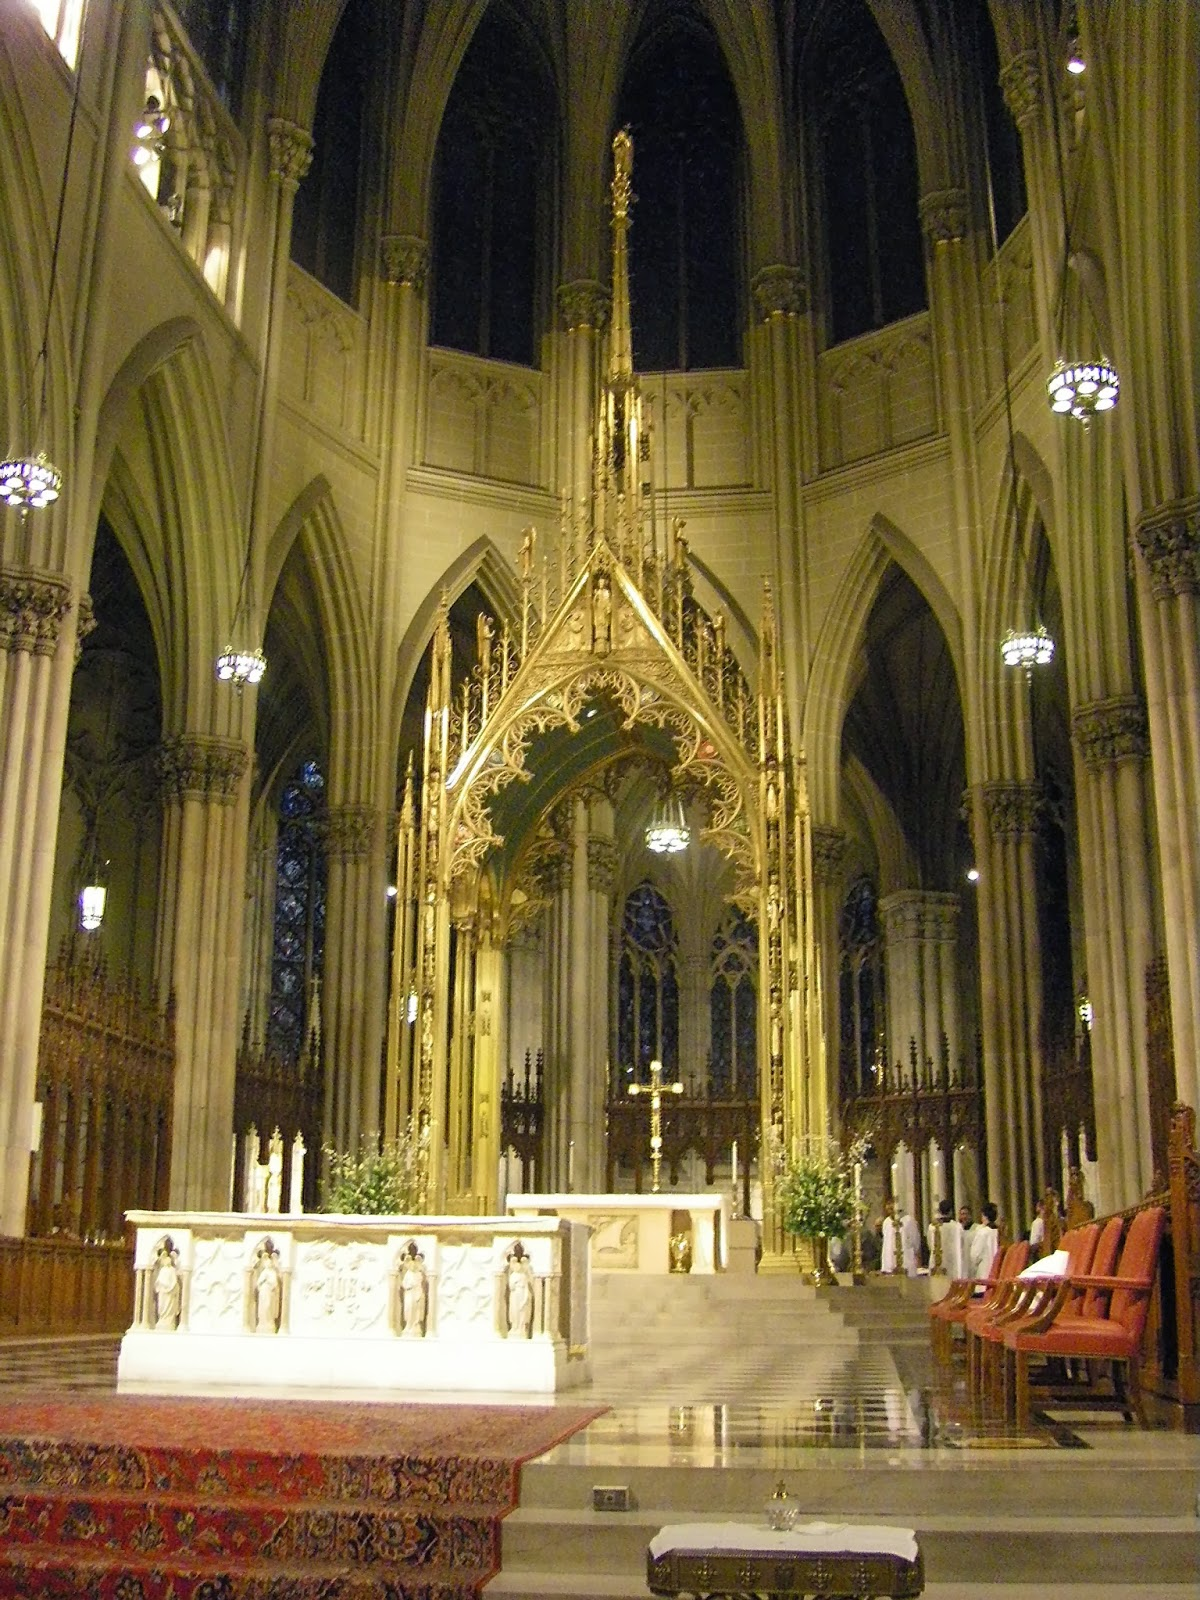 St Patricks Cathedral New York City TripAdvisor